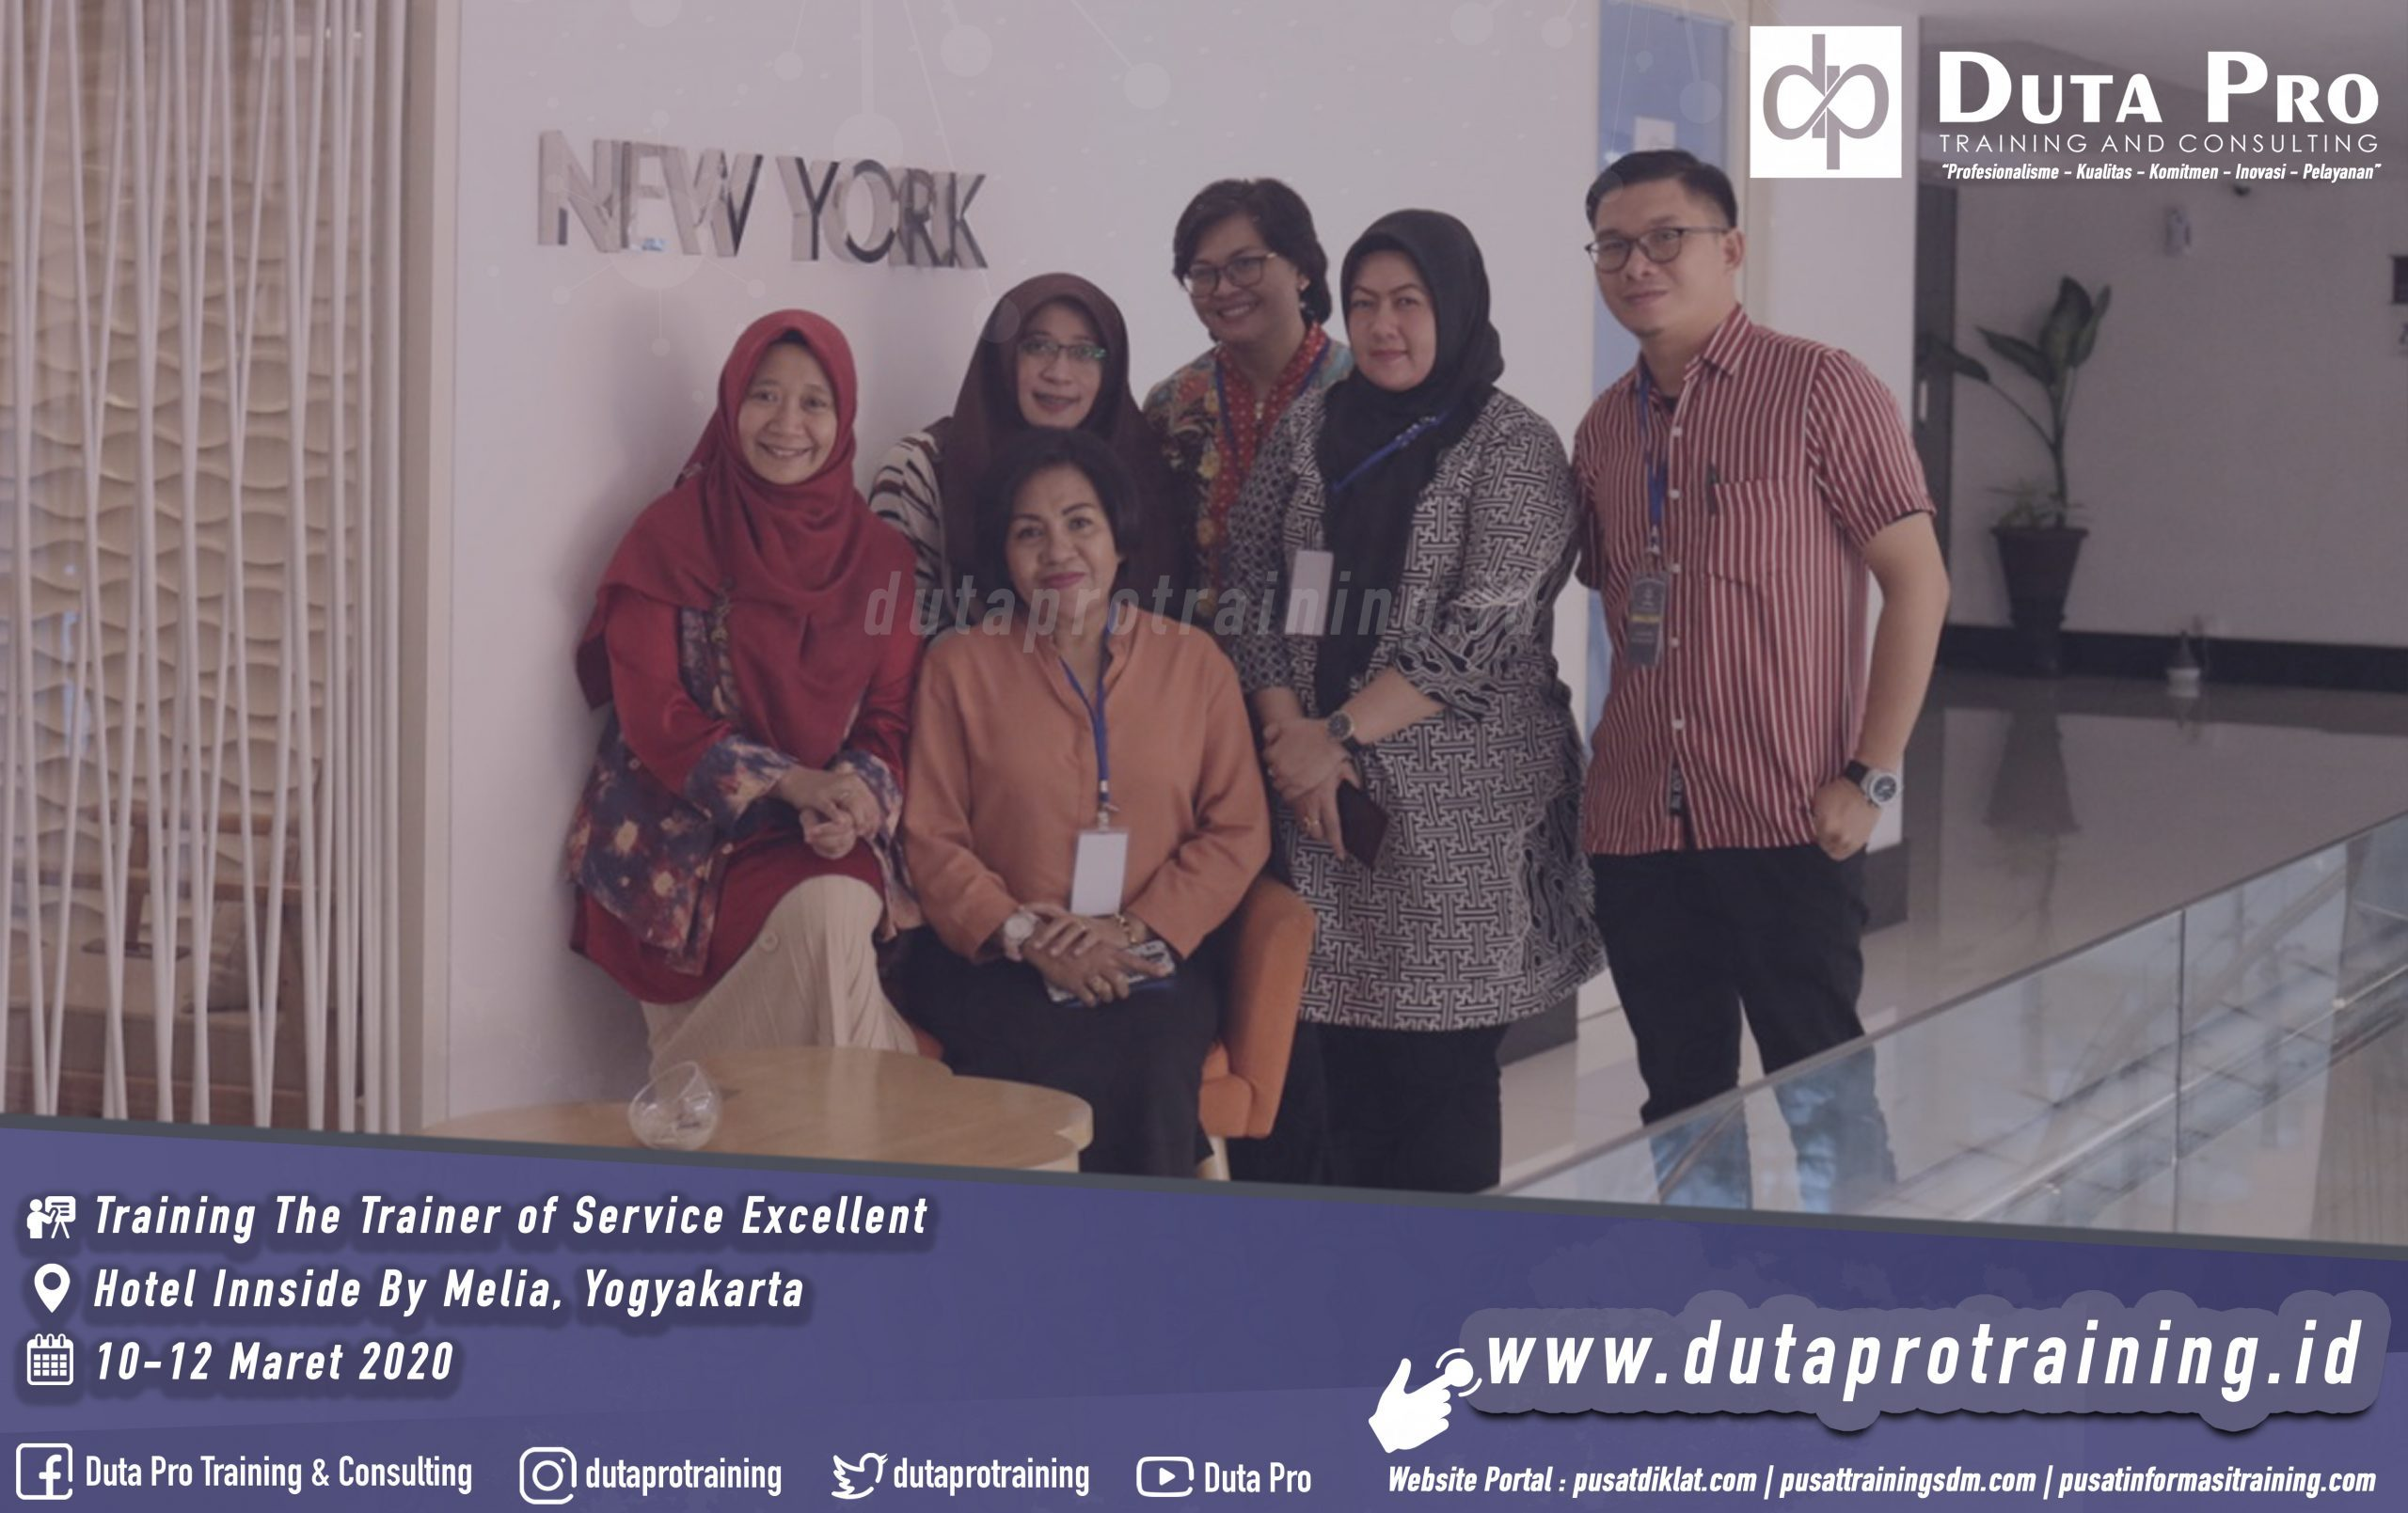 Training The Trainer of Service Excellent Hotel jogja duta pro. Galeri Website scaled 2559x1609 - Galeri Foto Training